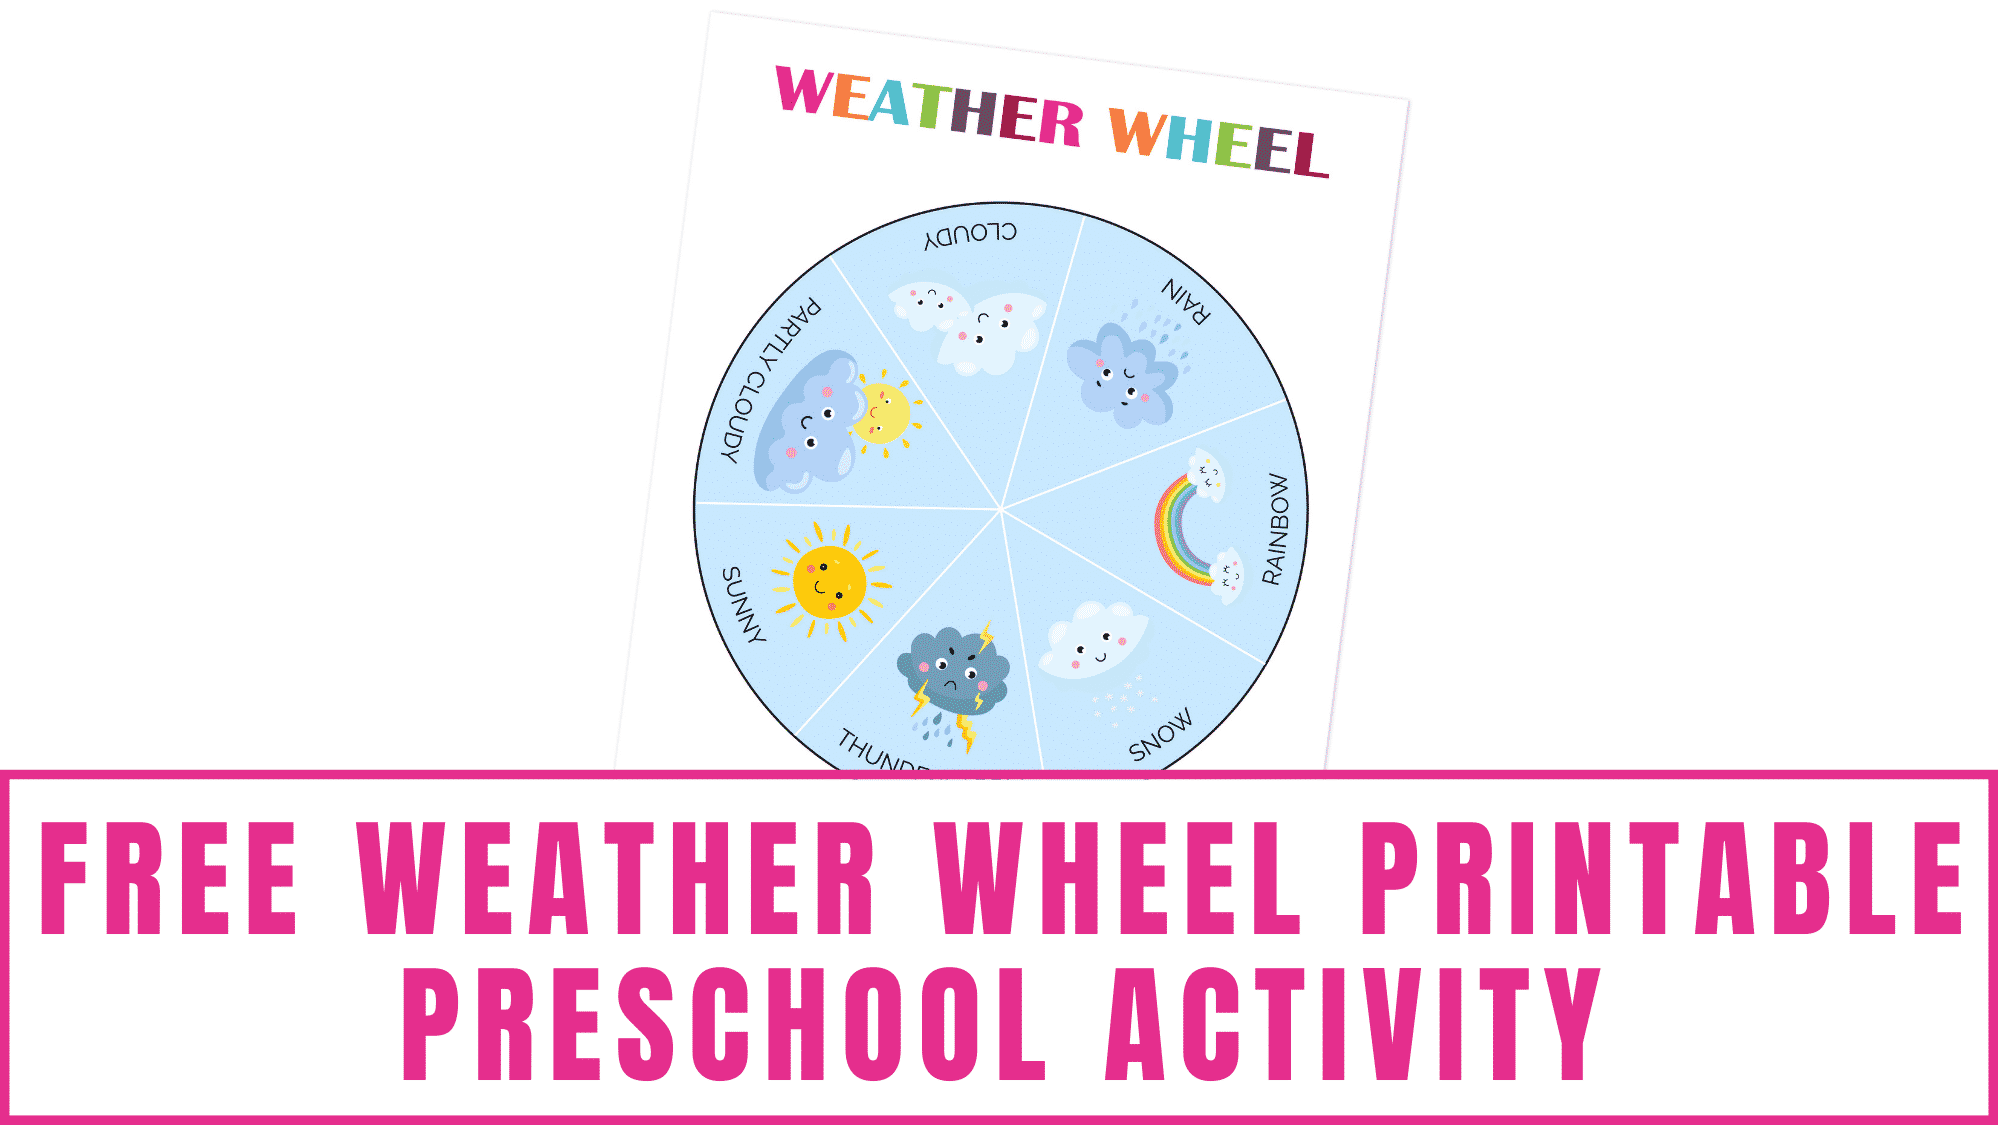 This free weather wheel printable preschool activity is a great way to teach young kids about the different types of weather.